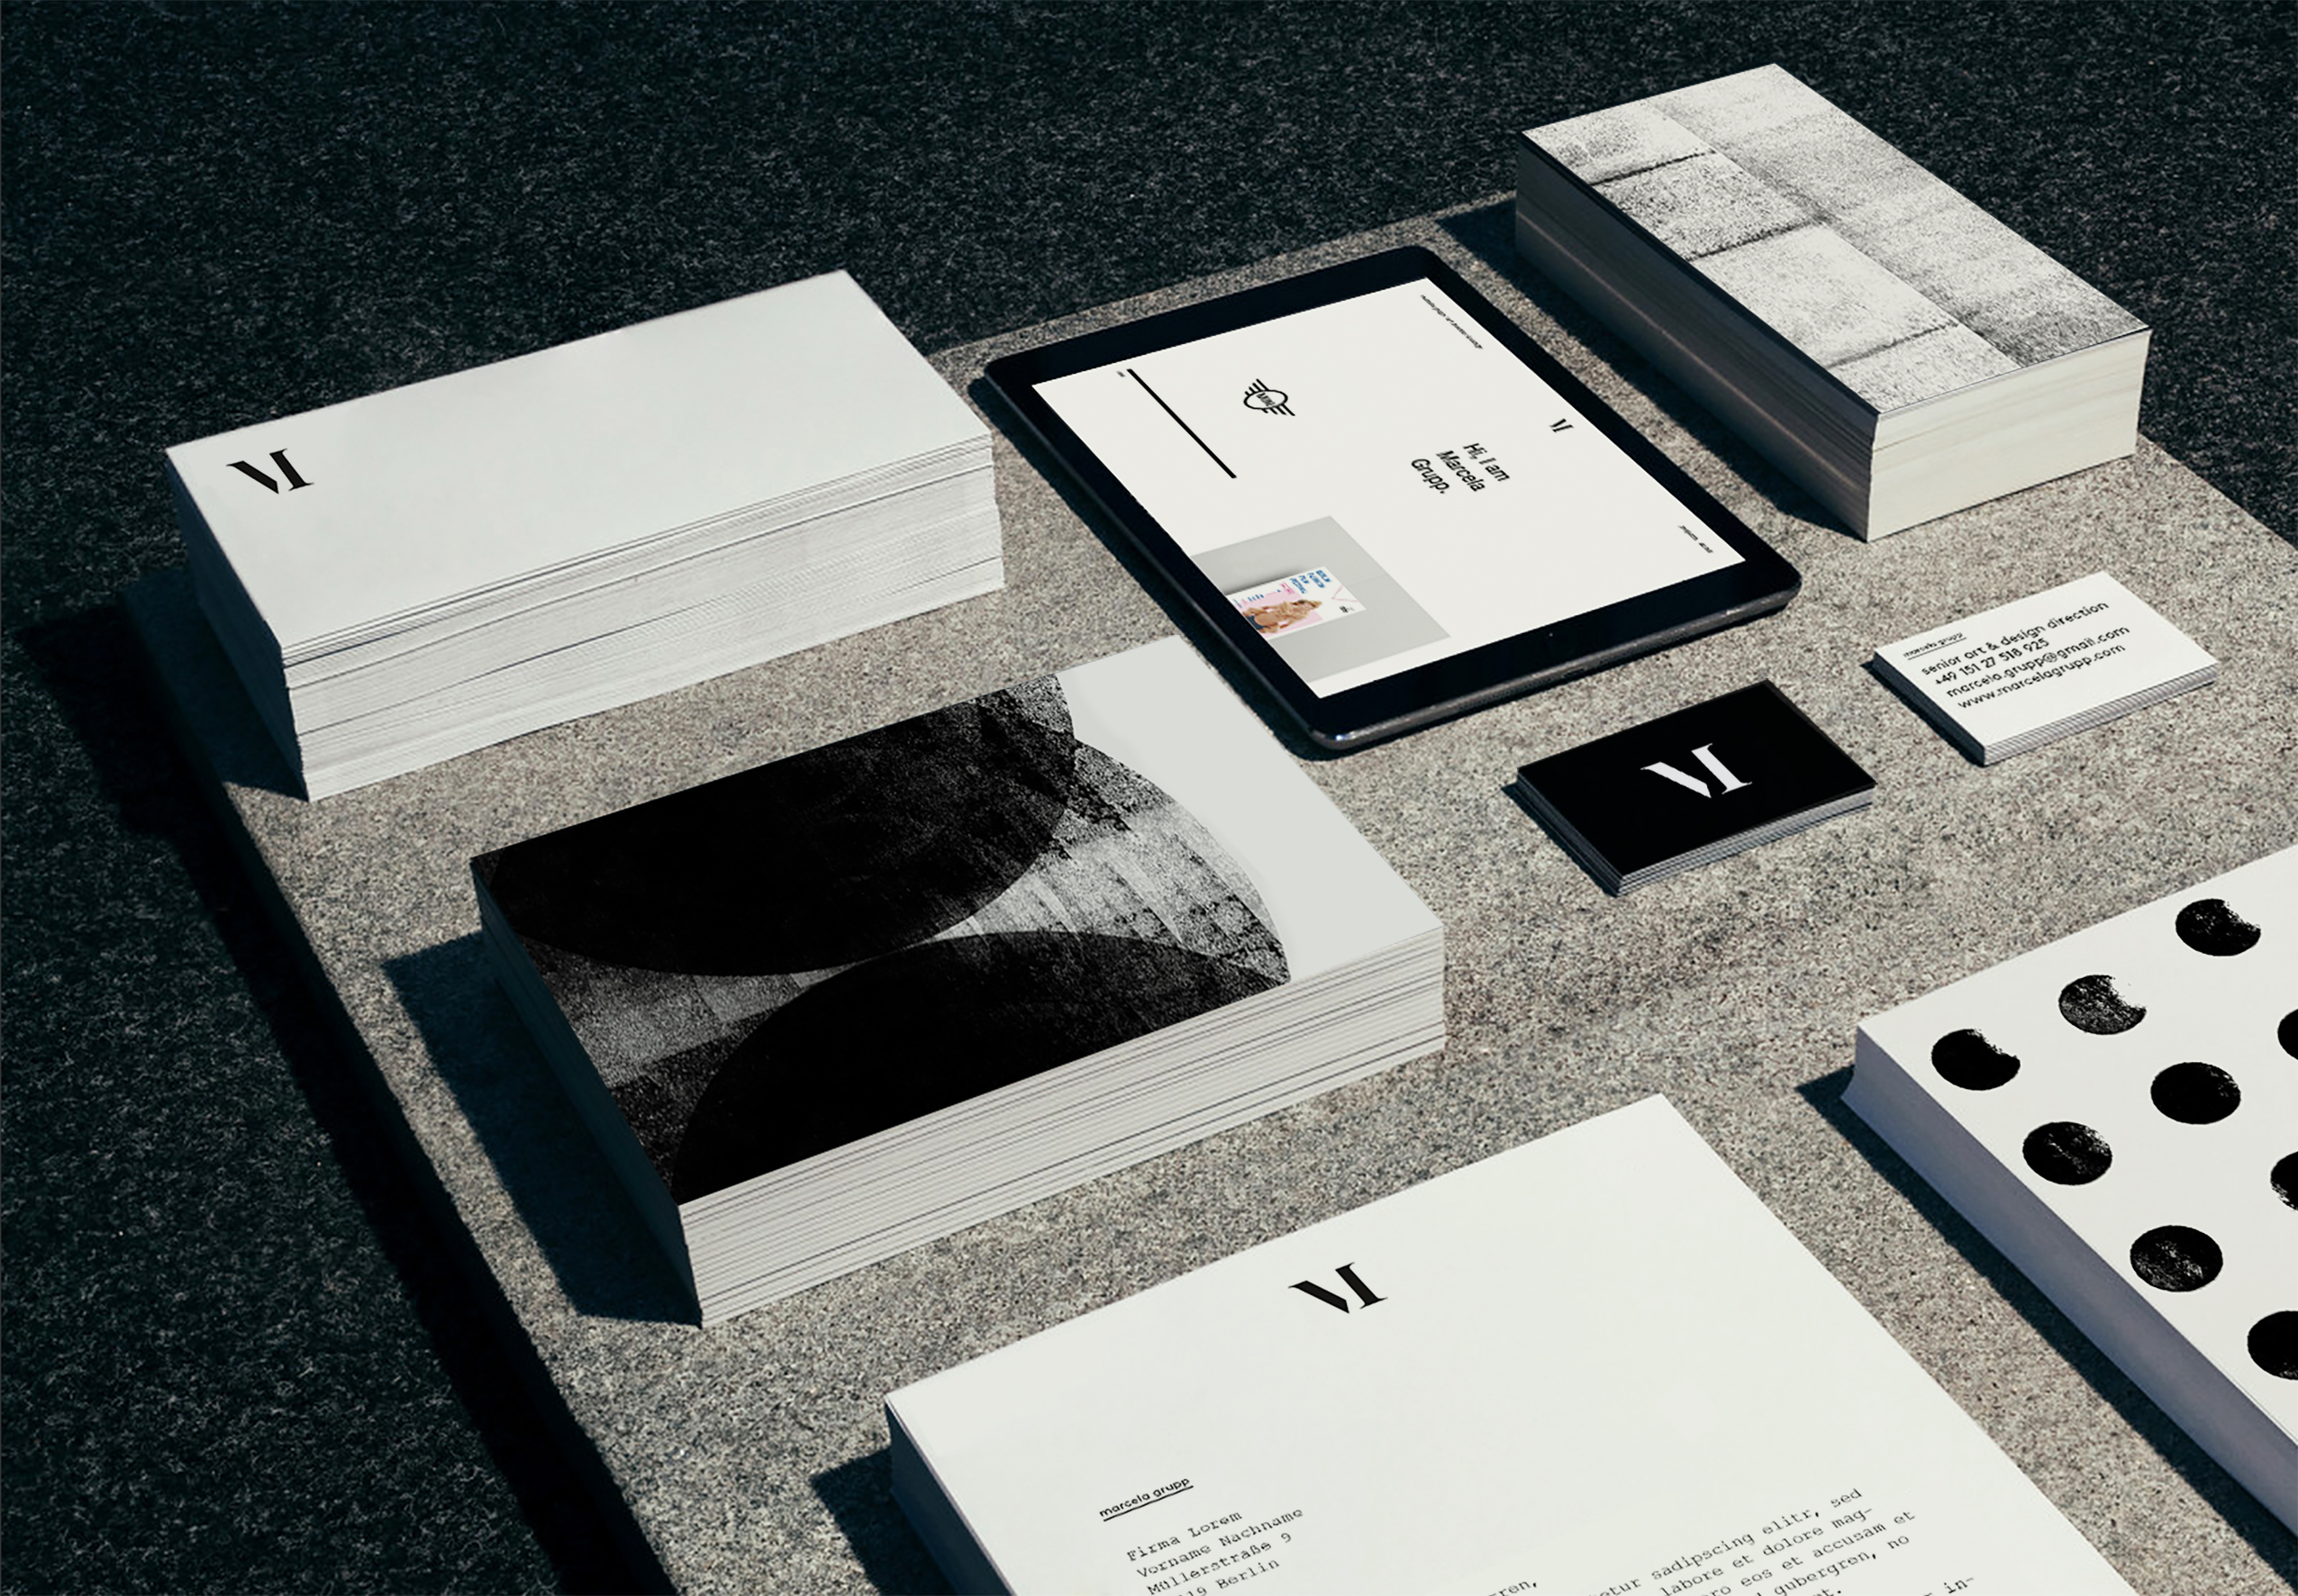 marcela grupp | design & creative direction projects